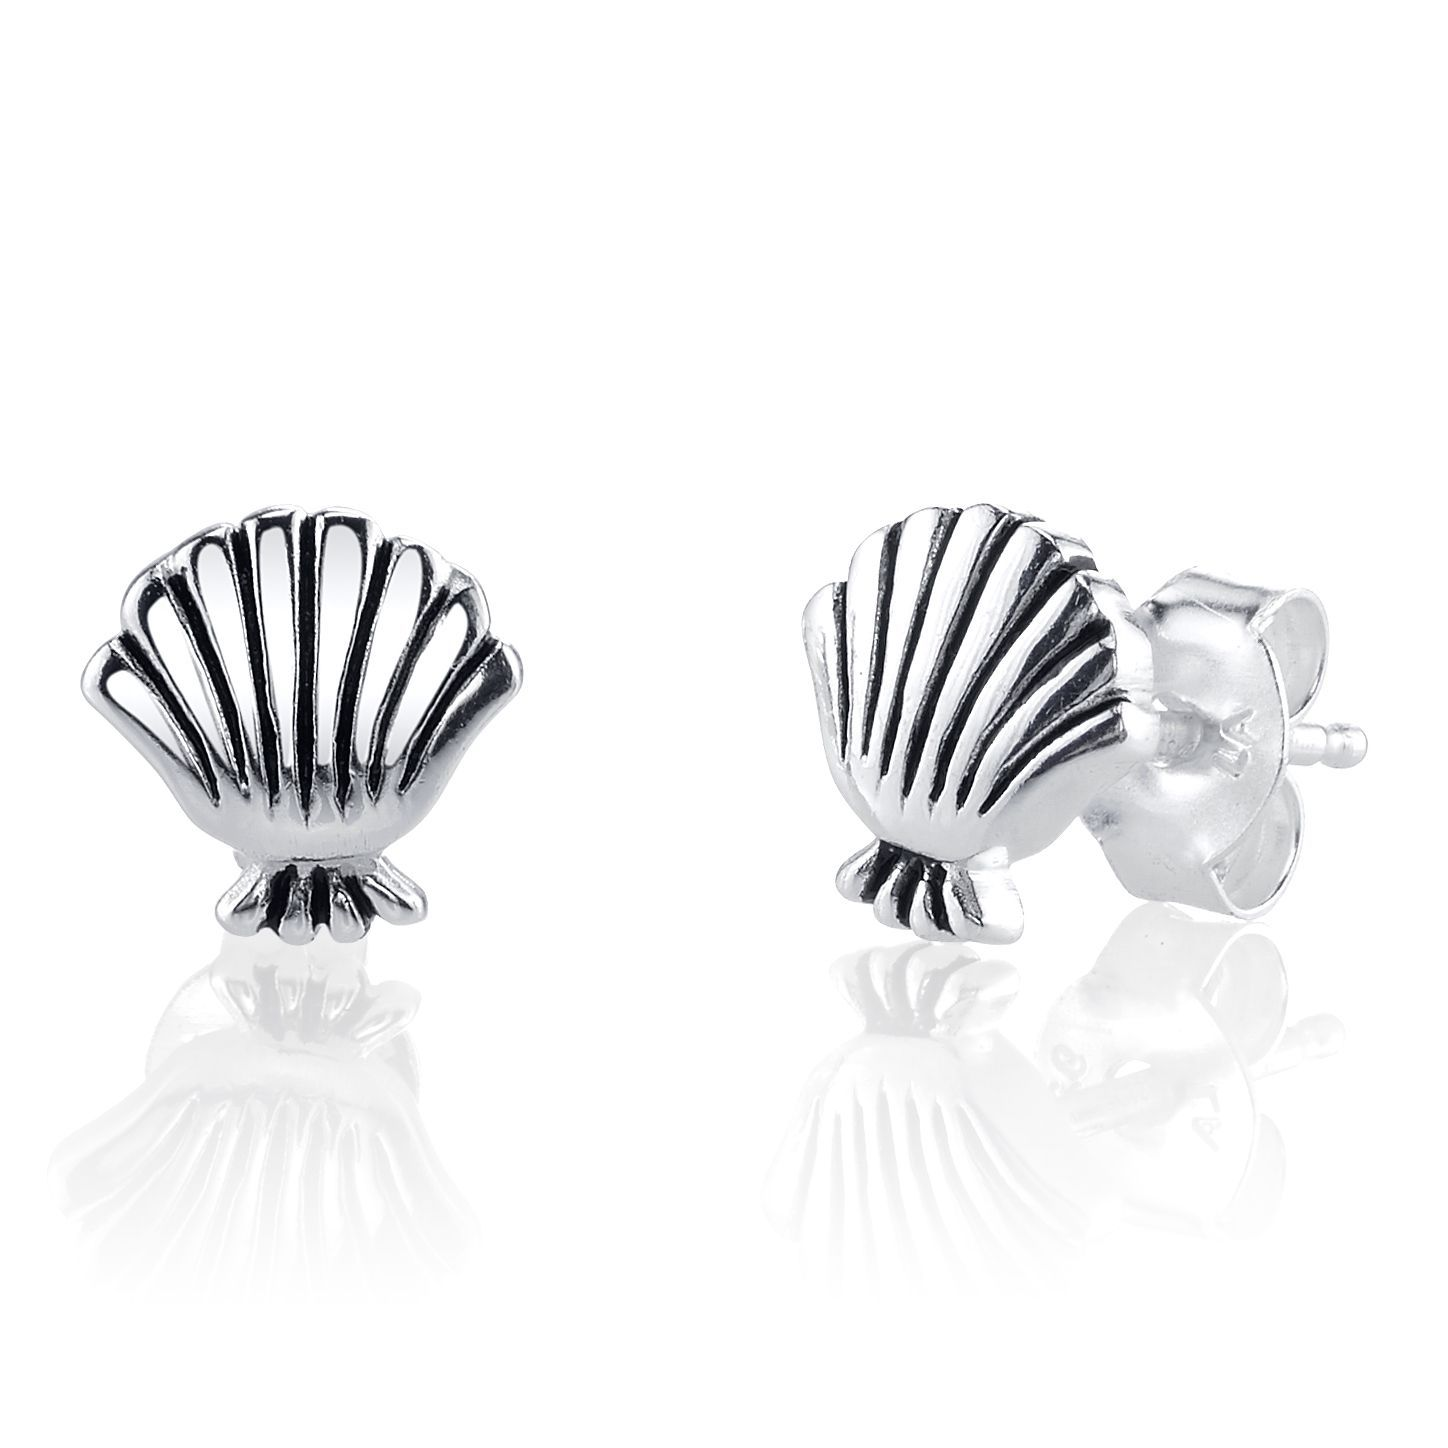 img seashell toes sandy shop stud products earrings